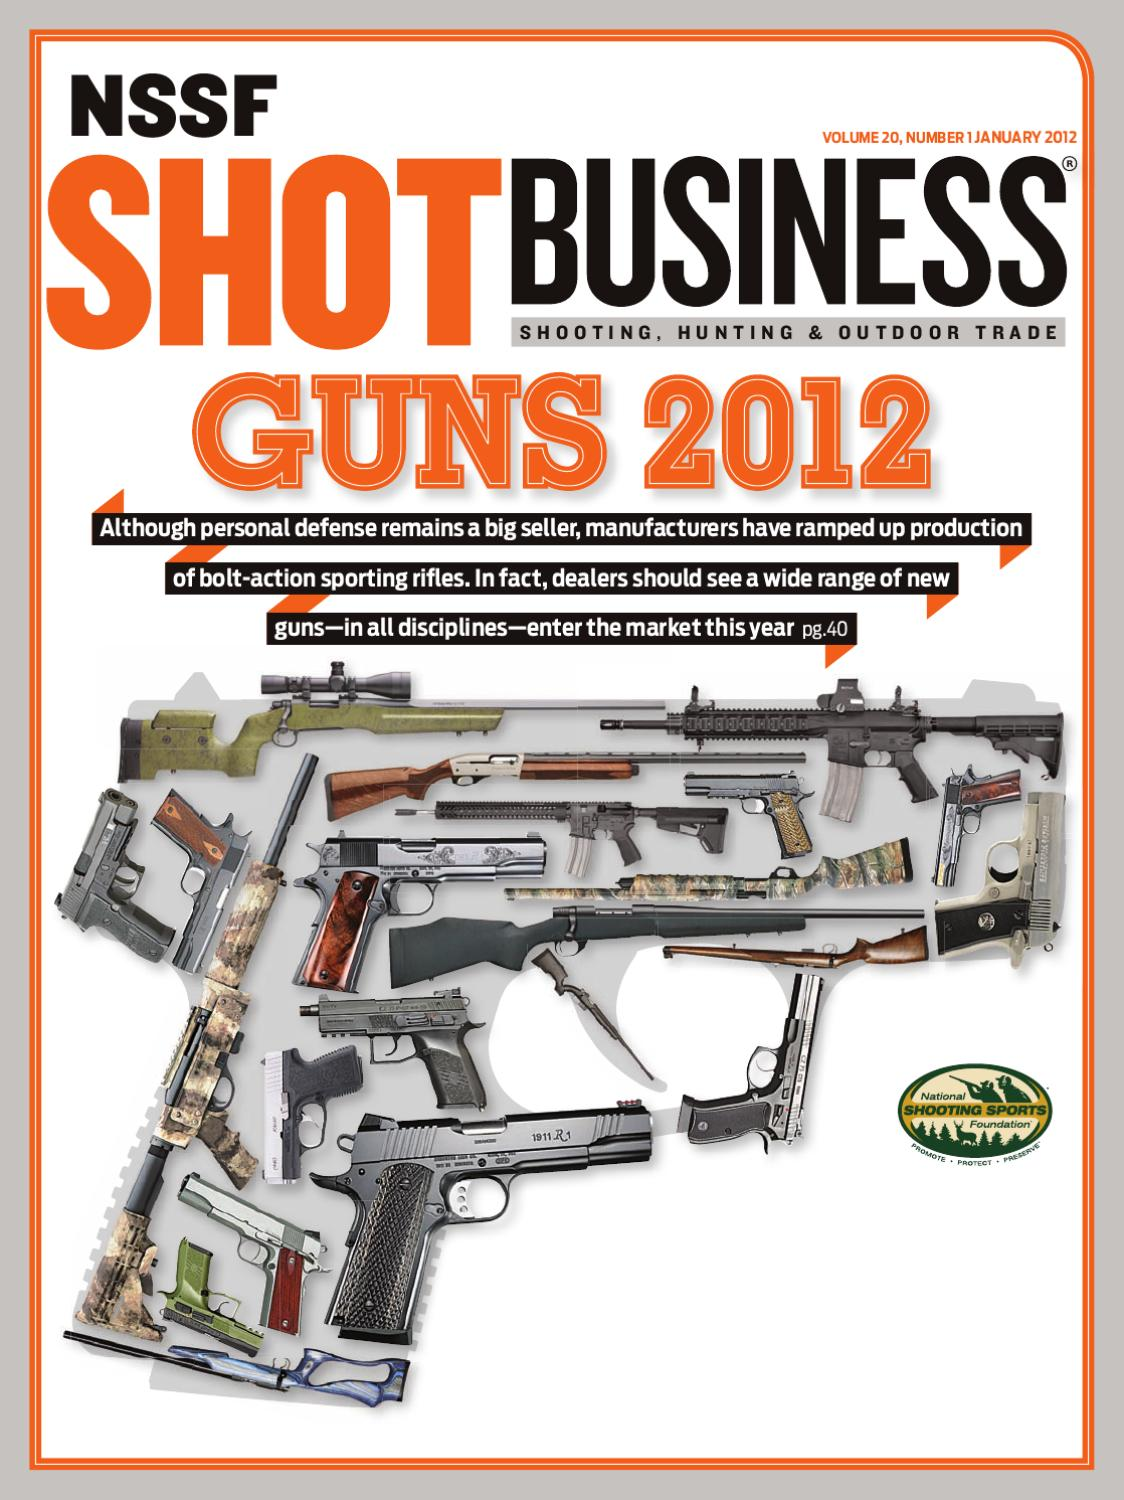 Shot Business January 2012 By Issuu Tda1175p 8211 Low Noise Tv Vertical Deflection System